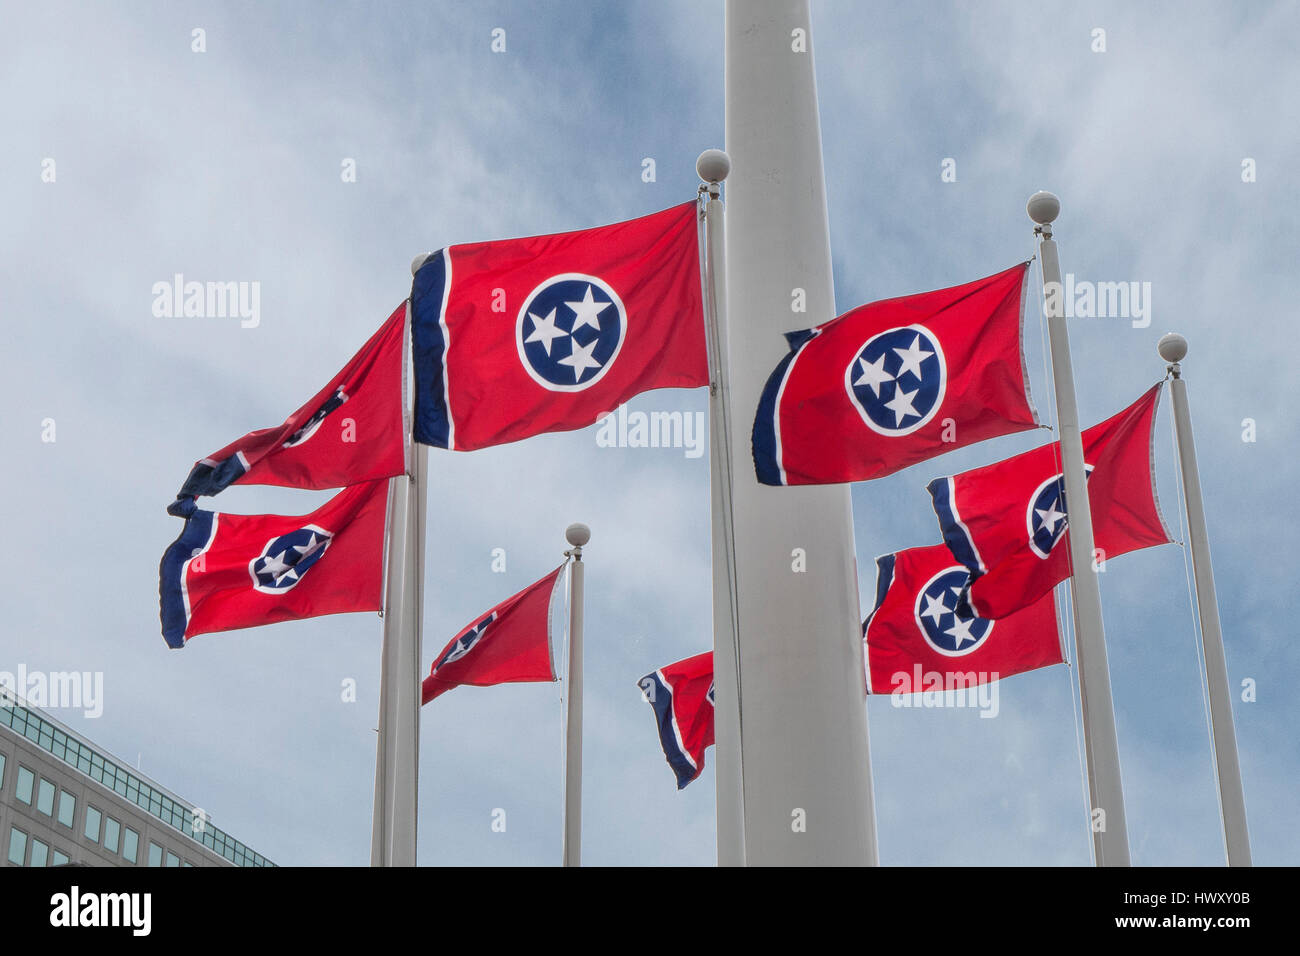 Tennessee State flags, Nashville, Tennessee - Stock Image